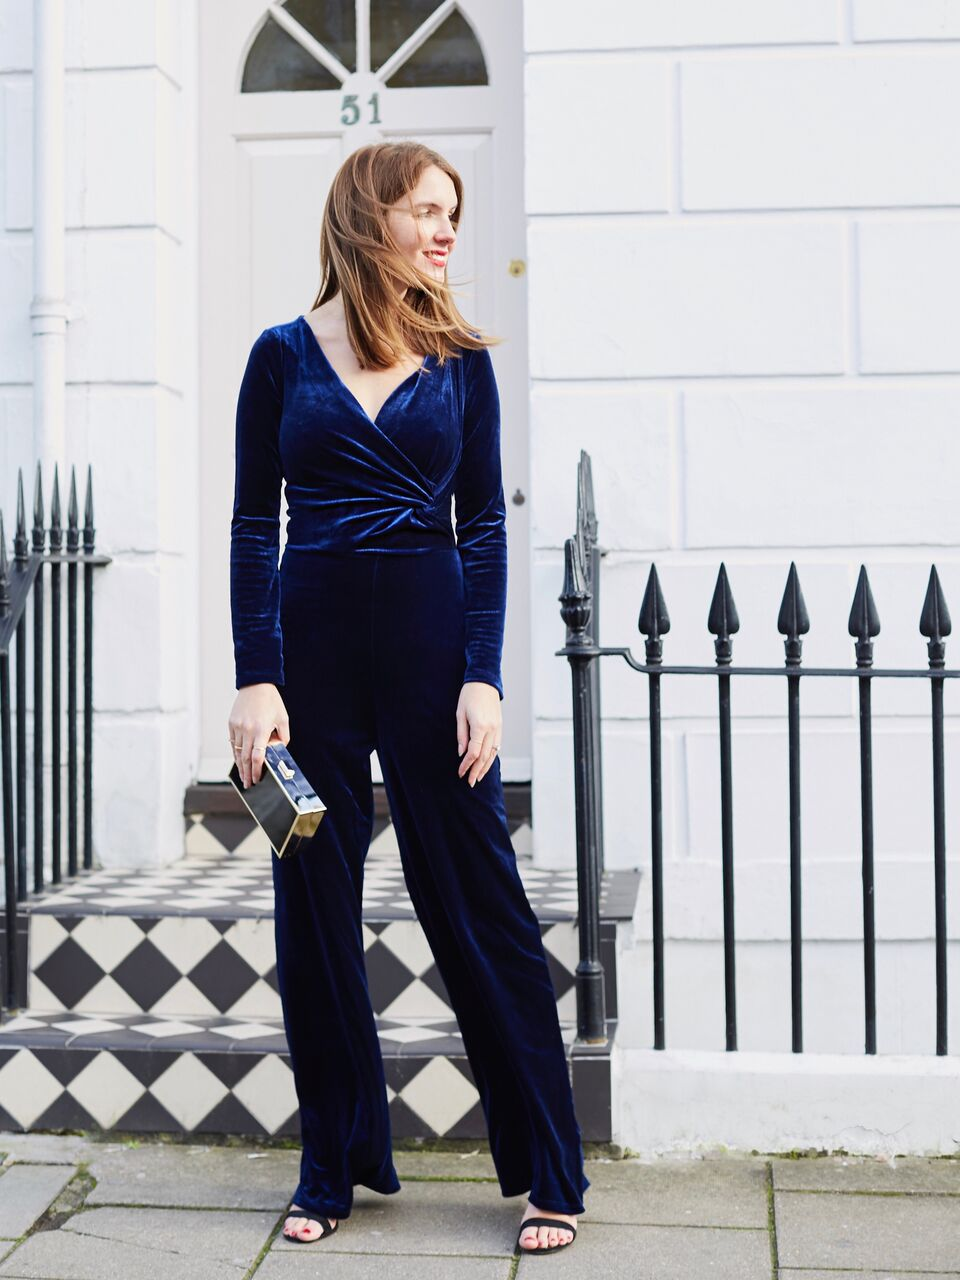 THE GROWN UP EDIT - Finery Velvet Jumpsuit